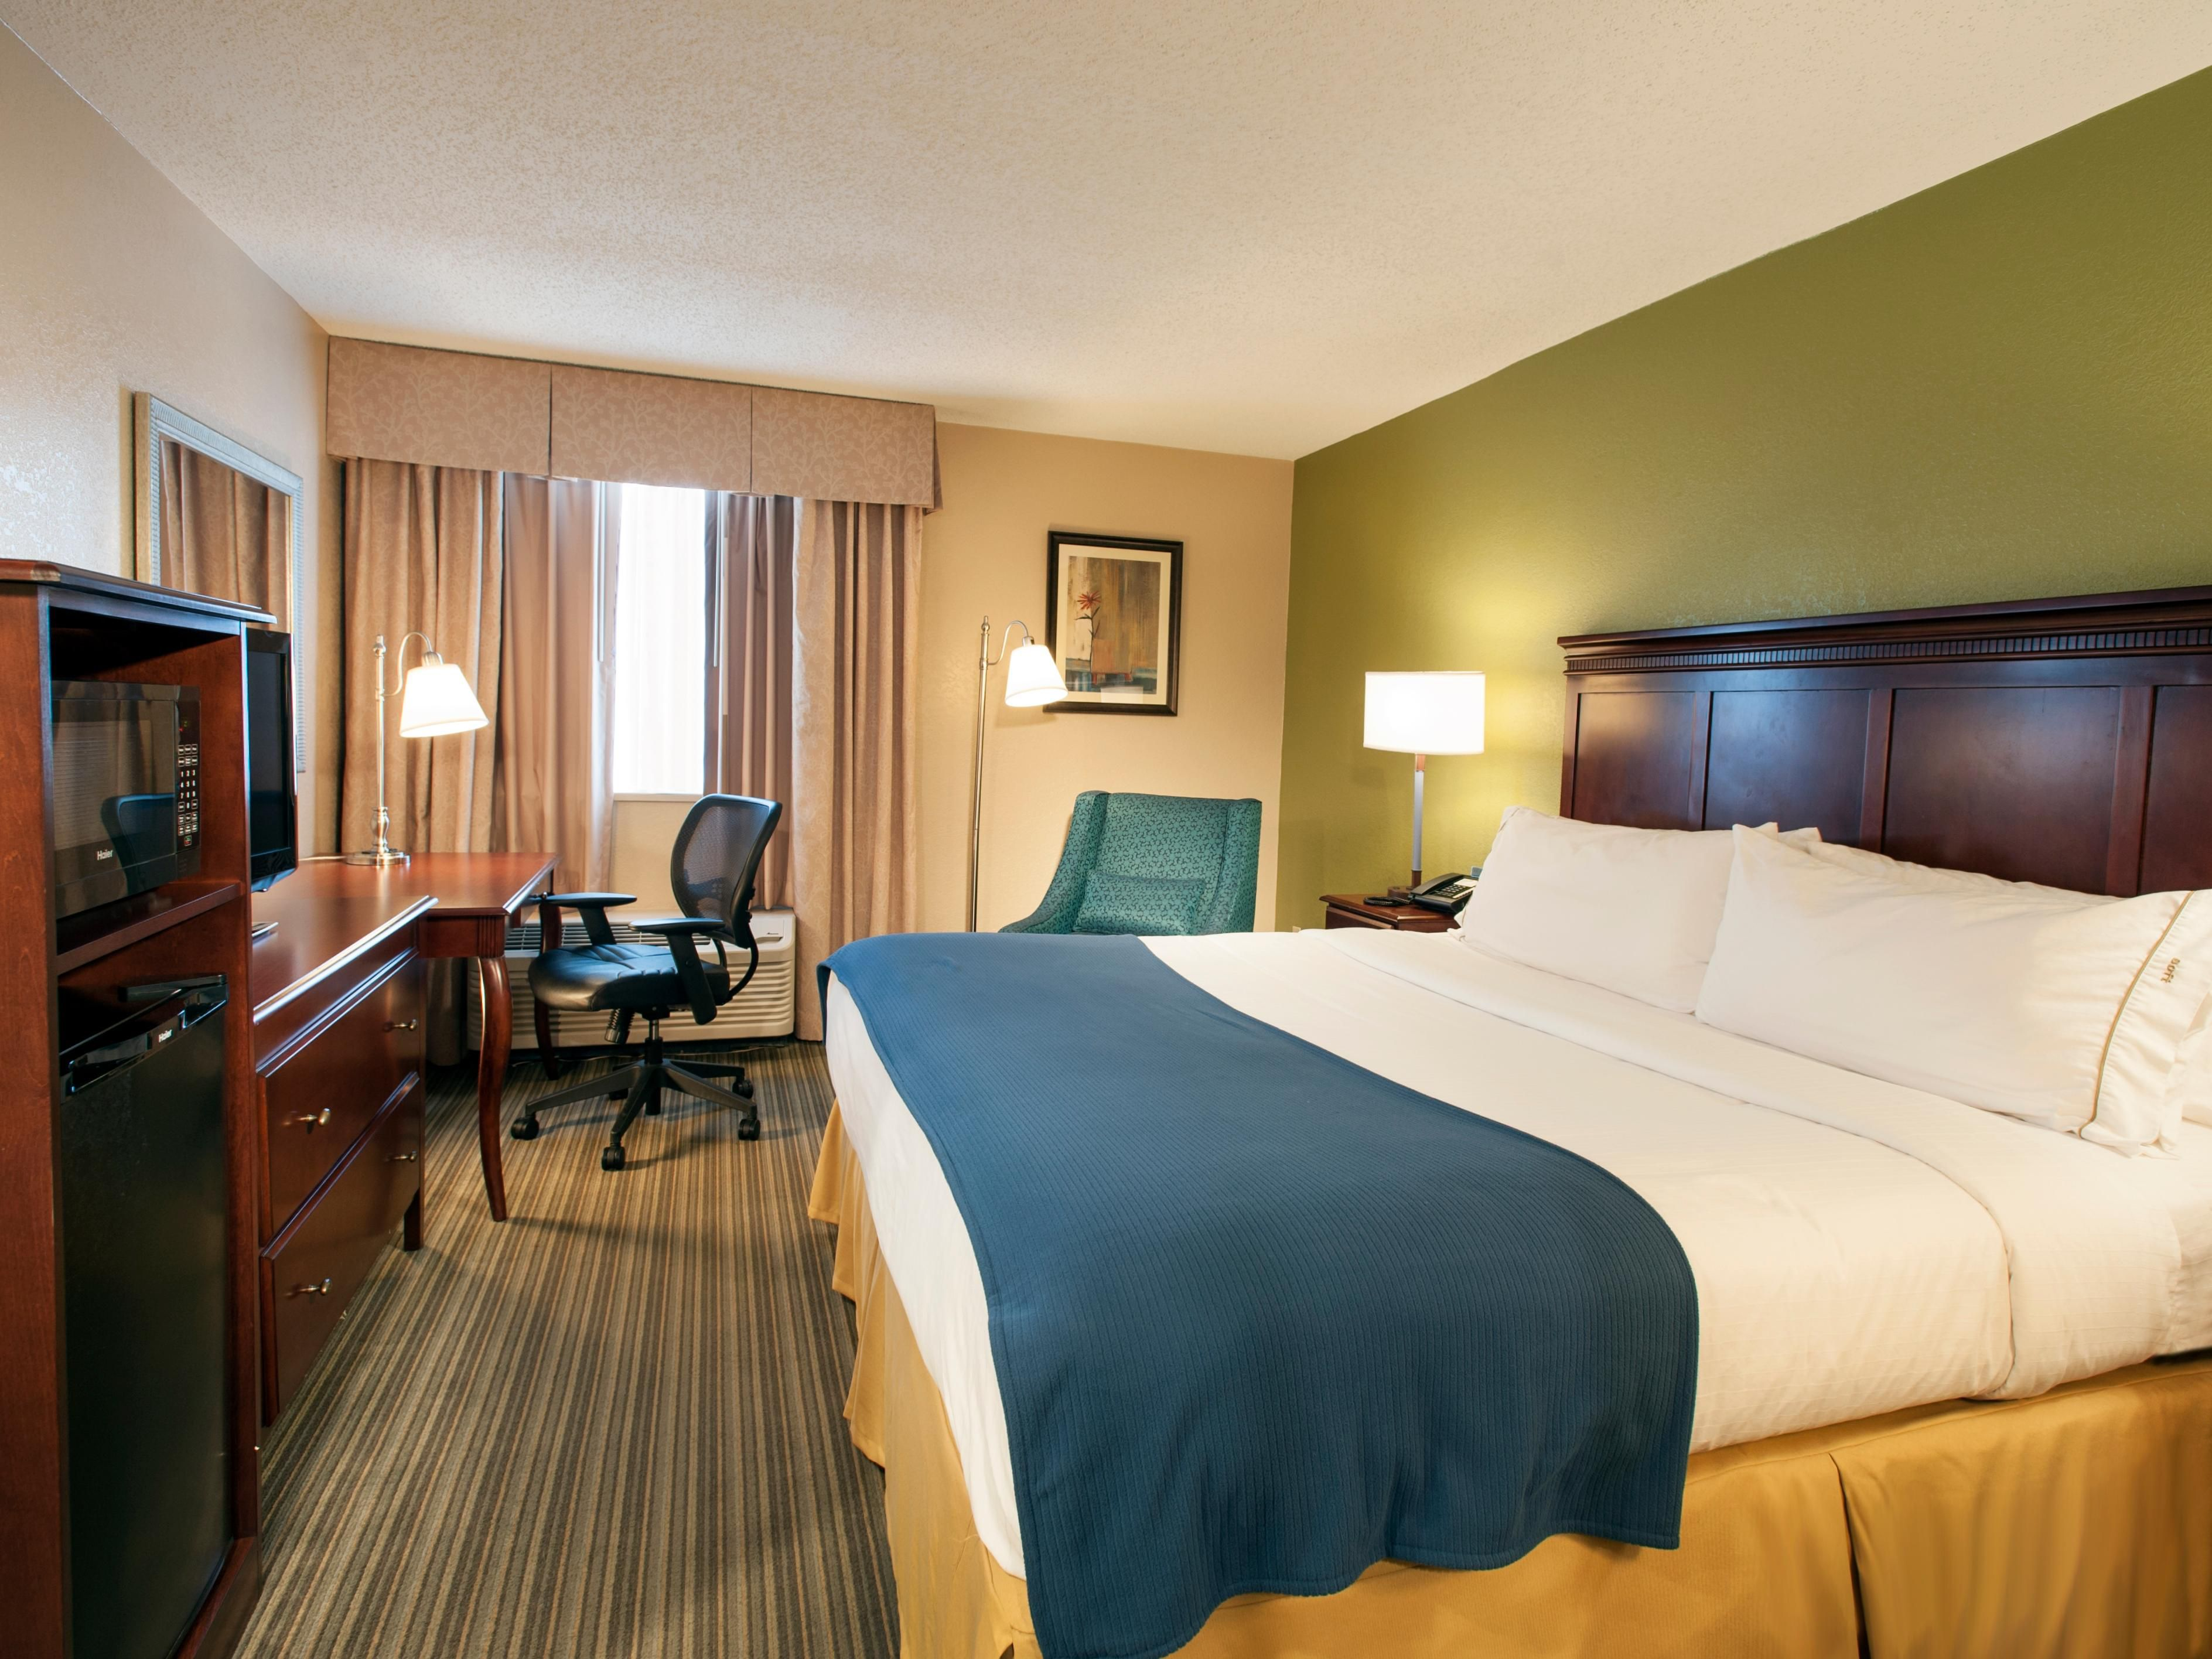 Enjoy free wireless Internet in our spacious king bed guest room